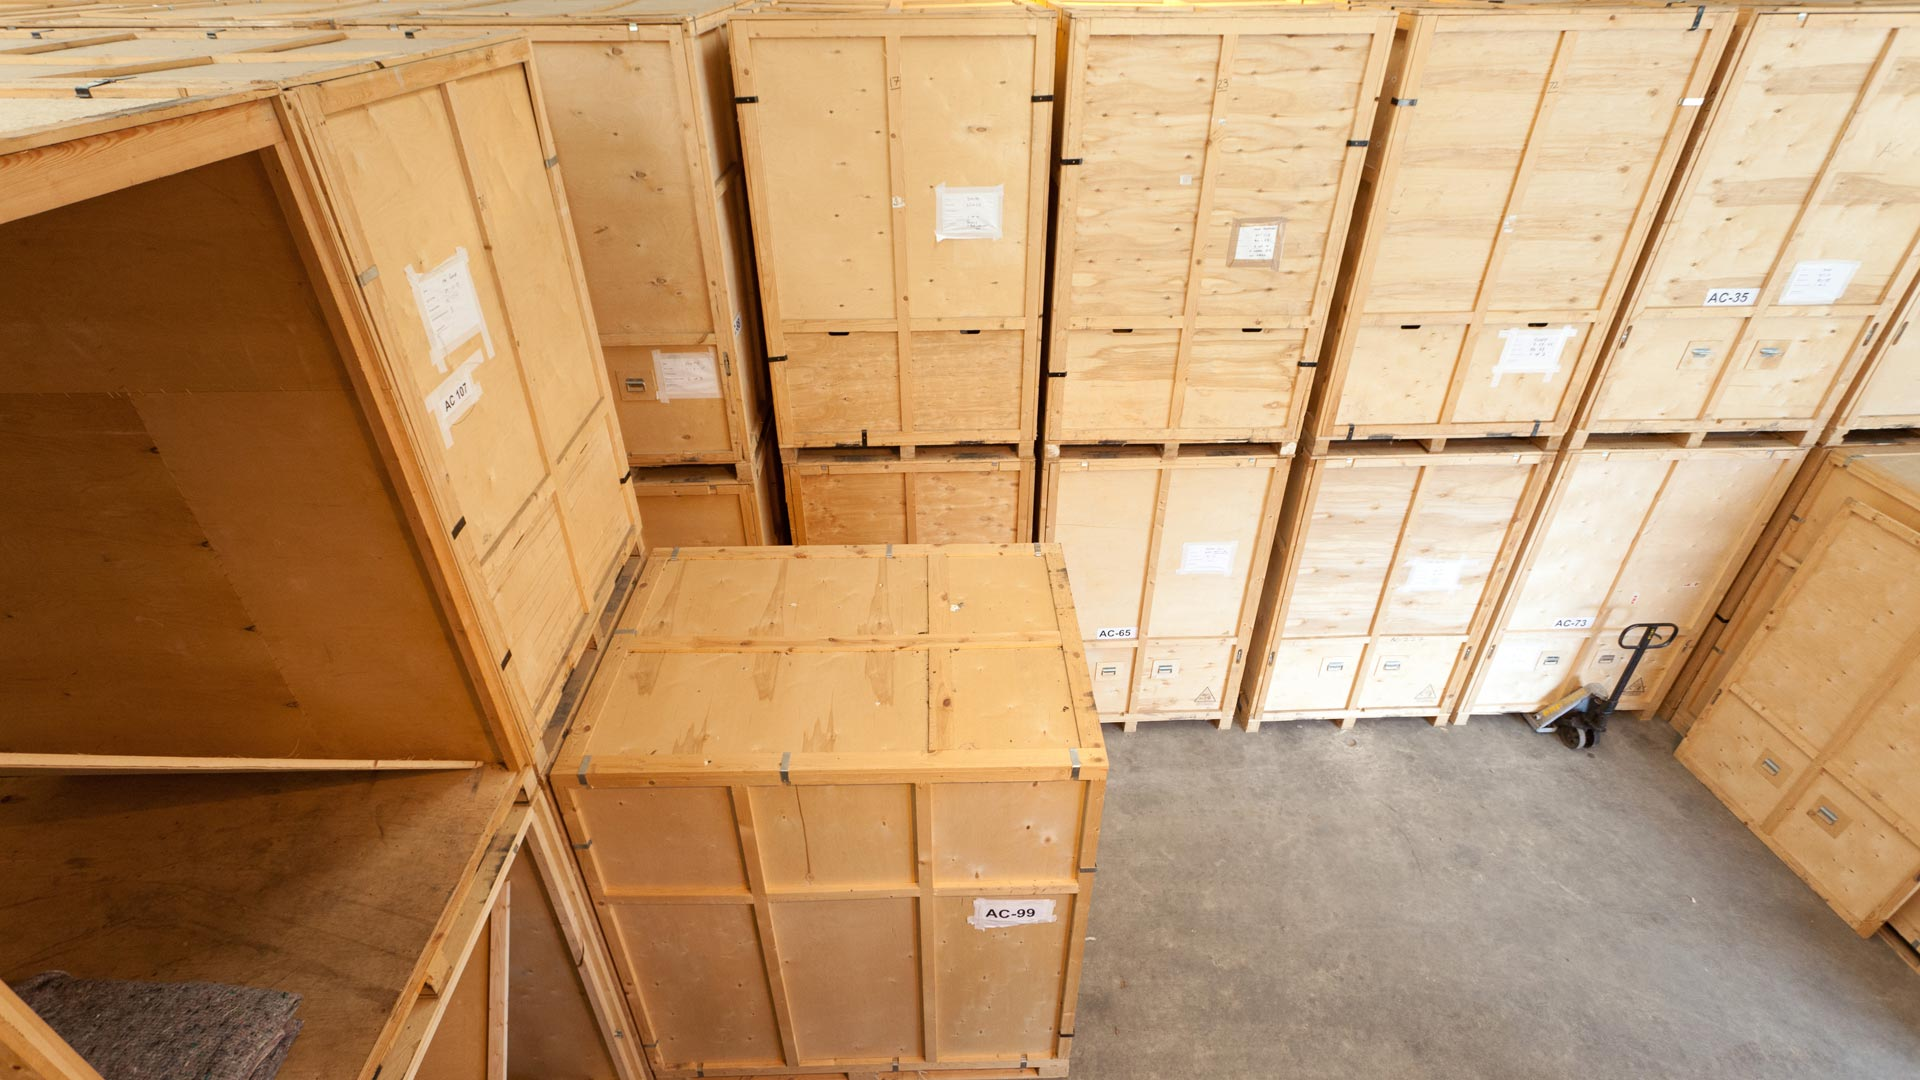 Greenwoods Removals & Storage a storage company in Unit 69 Glenmore Business Park, Chichester, UK